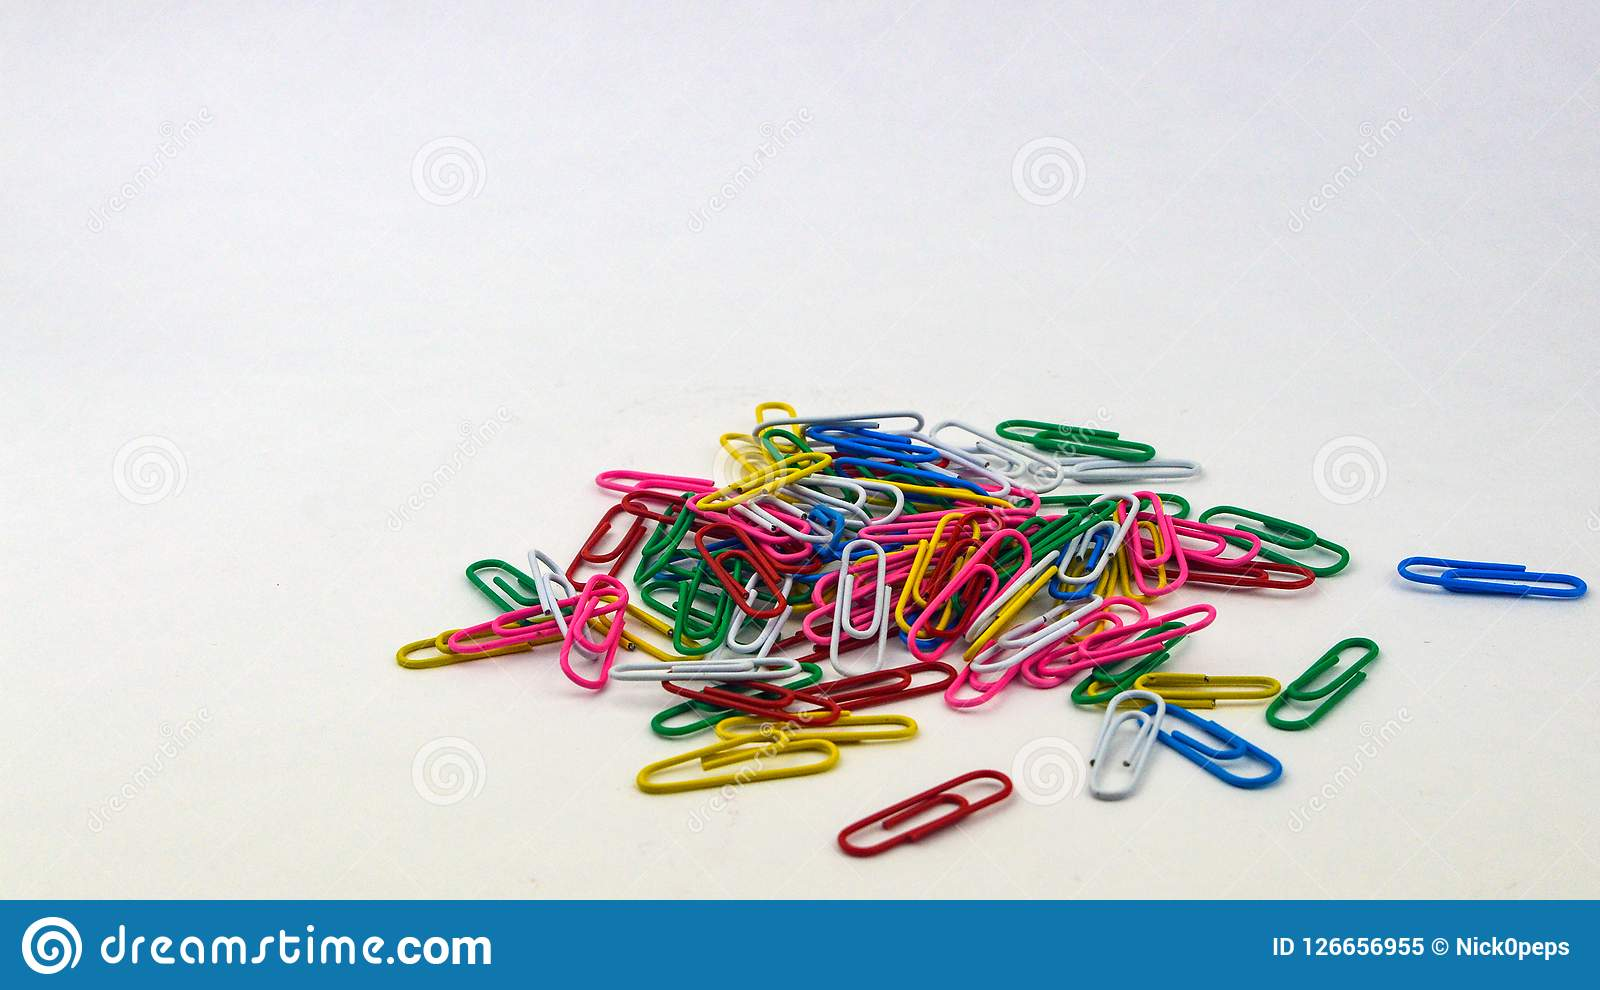 Lots of colorful paper clips on a white background